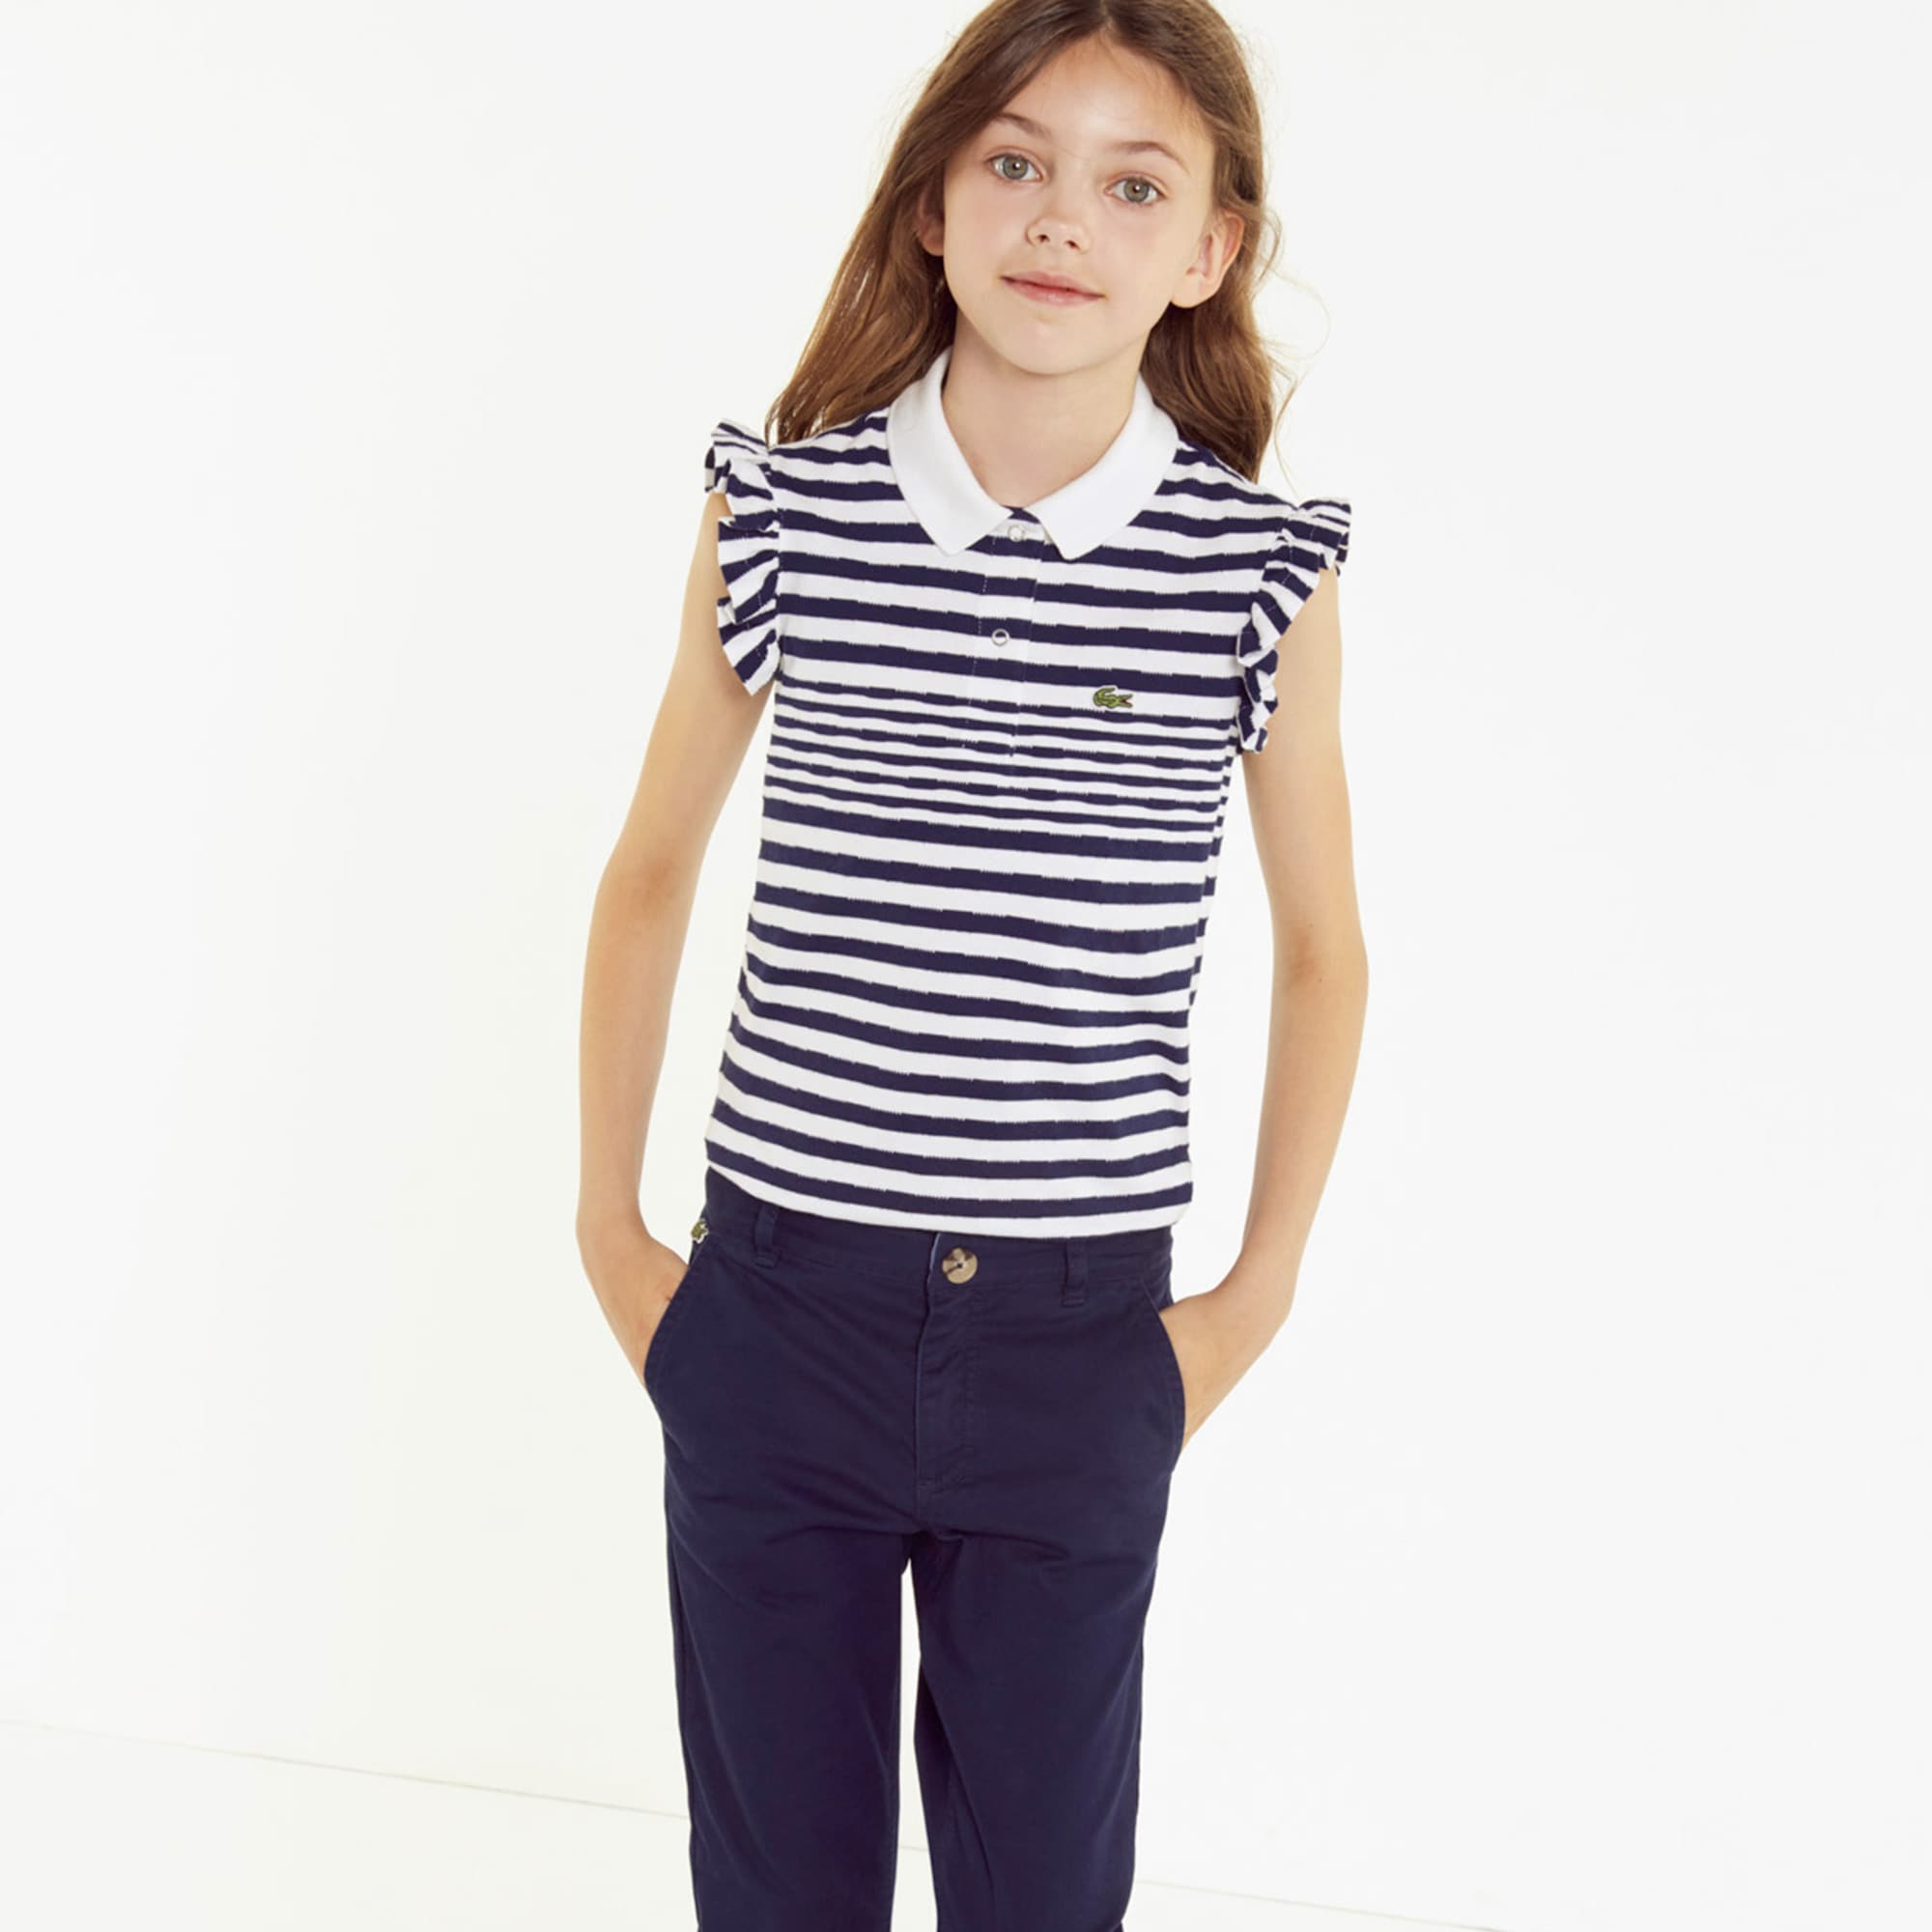 640da294 Girl's Clothing | Kid's Clothing | LACOSTE